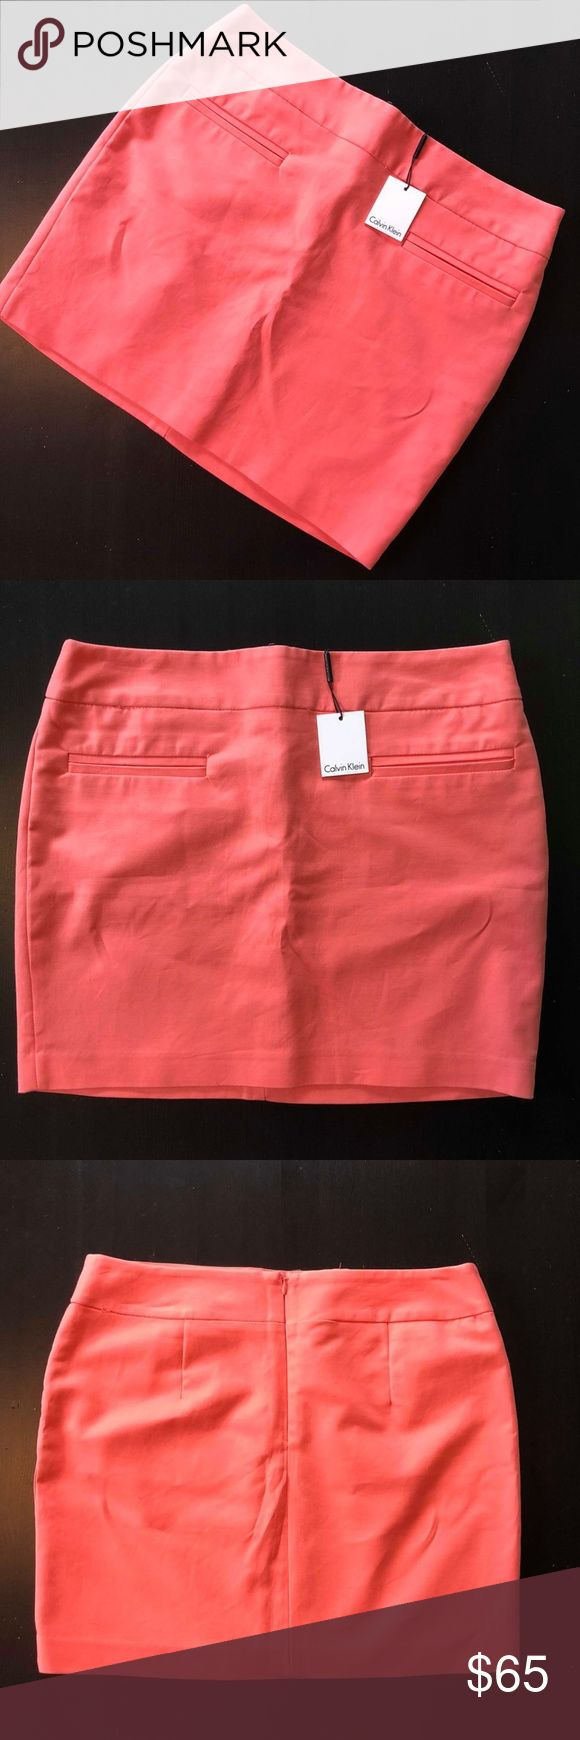 """{Calvin Klein} salmon pink mini skirt NWT •Calvin Klein salmon pink mini skirt NWT •Condition: Excellent, NWT •Size: 10 •Measurements: Waist: 17.5"""" Length: 16""""   This skirt is a beautiful salmon color, great to pair with a cardigan for spring or tights for winter! Calvin Klein Skirts Mini"""